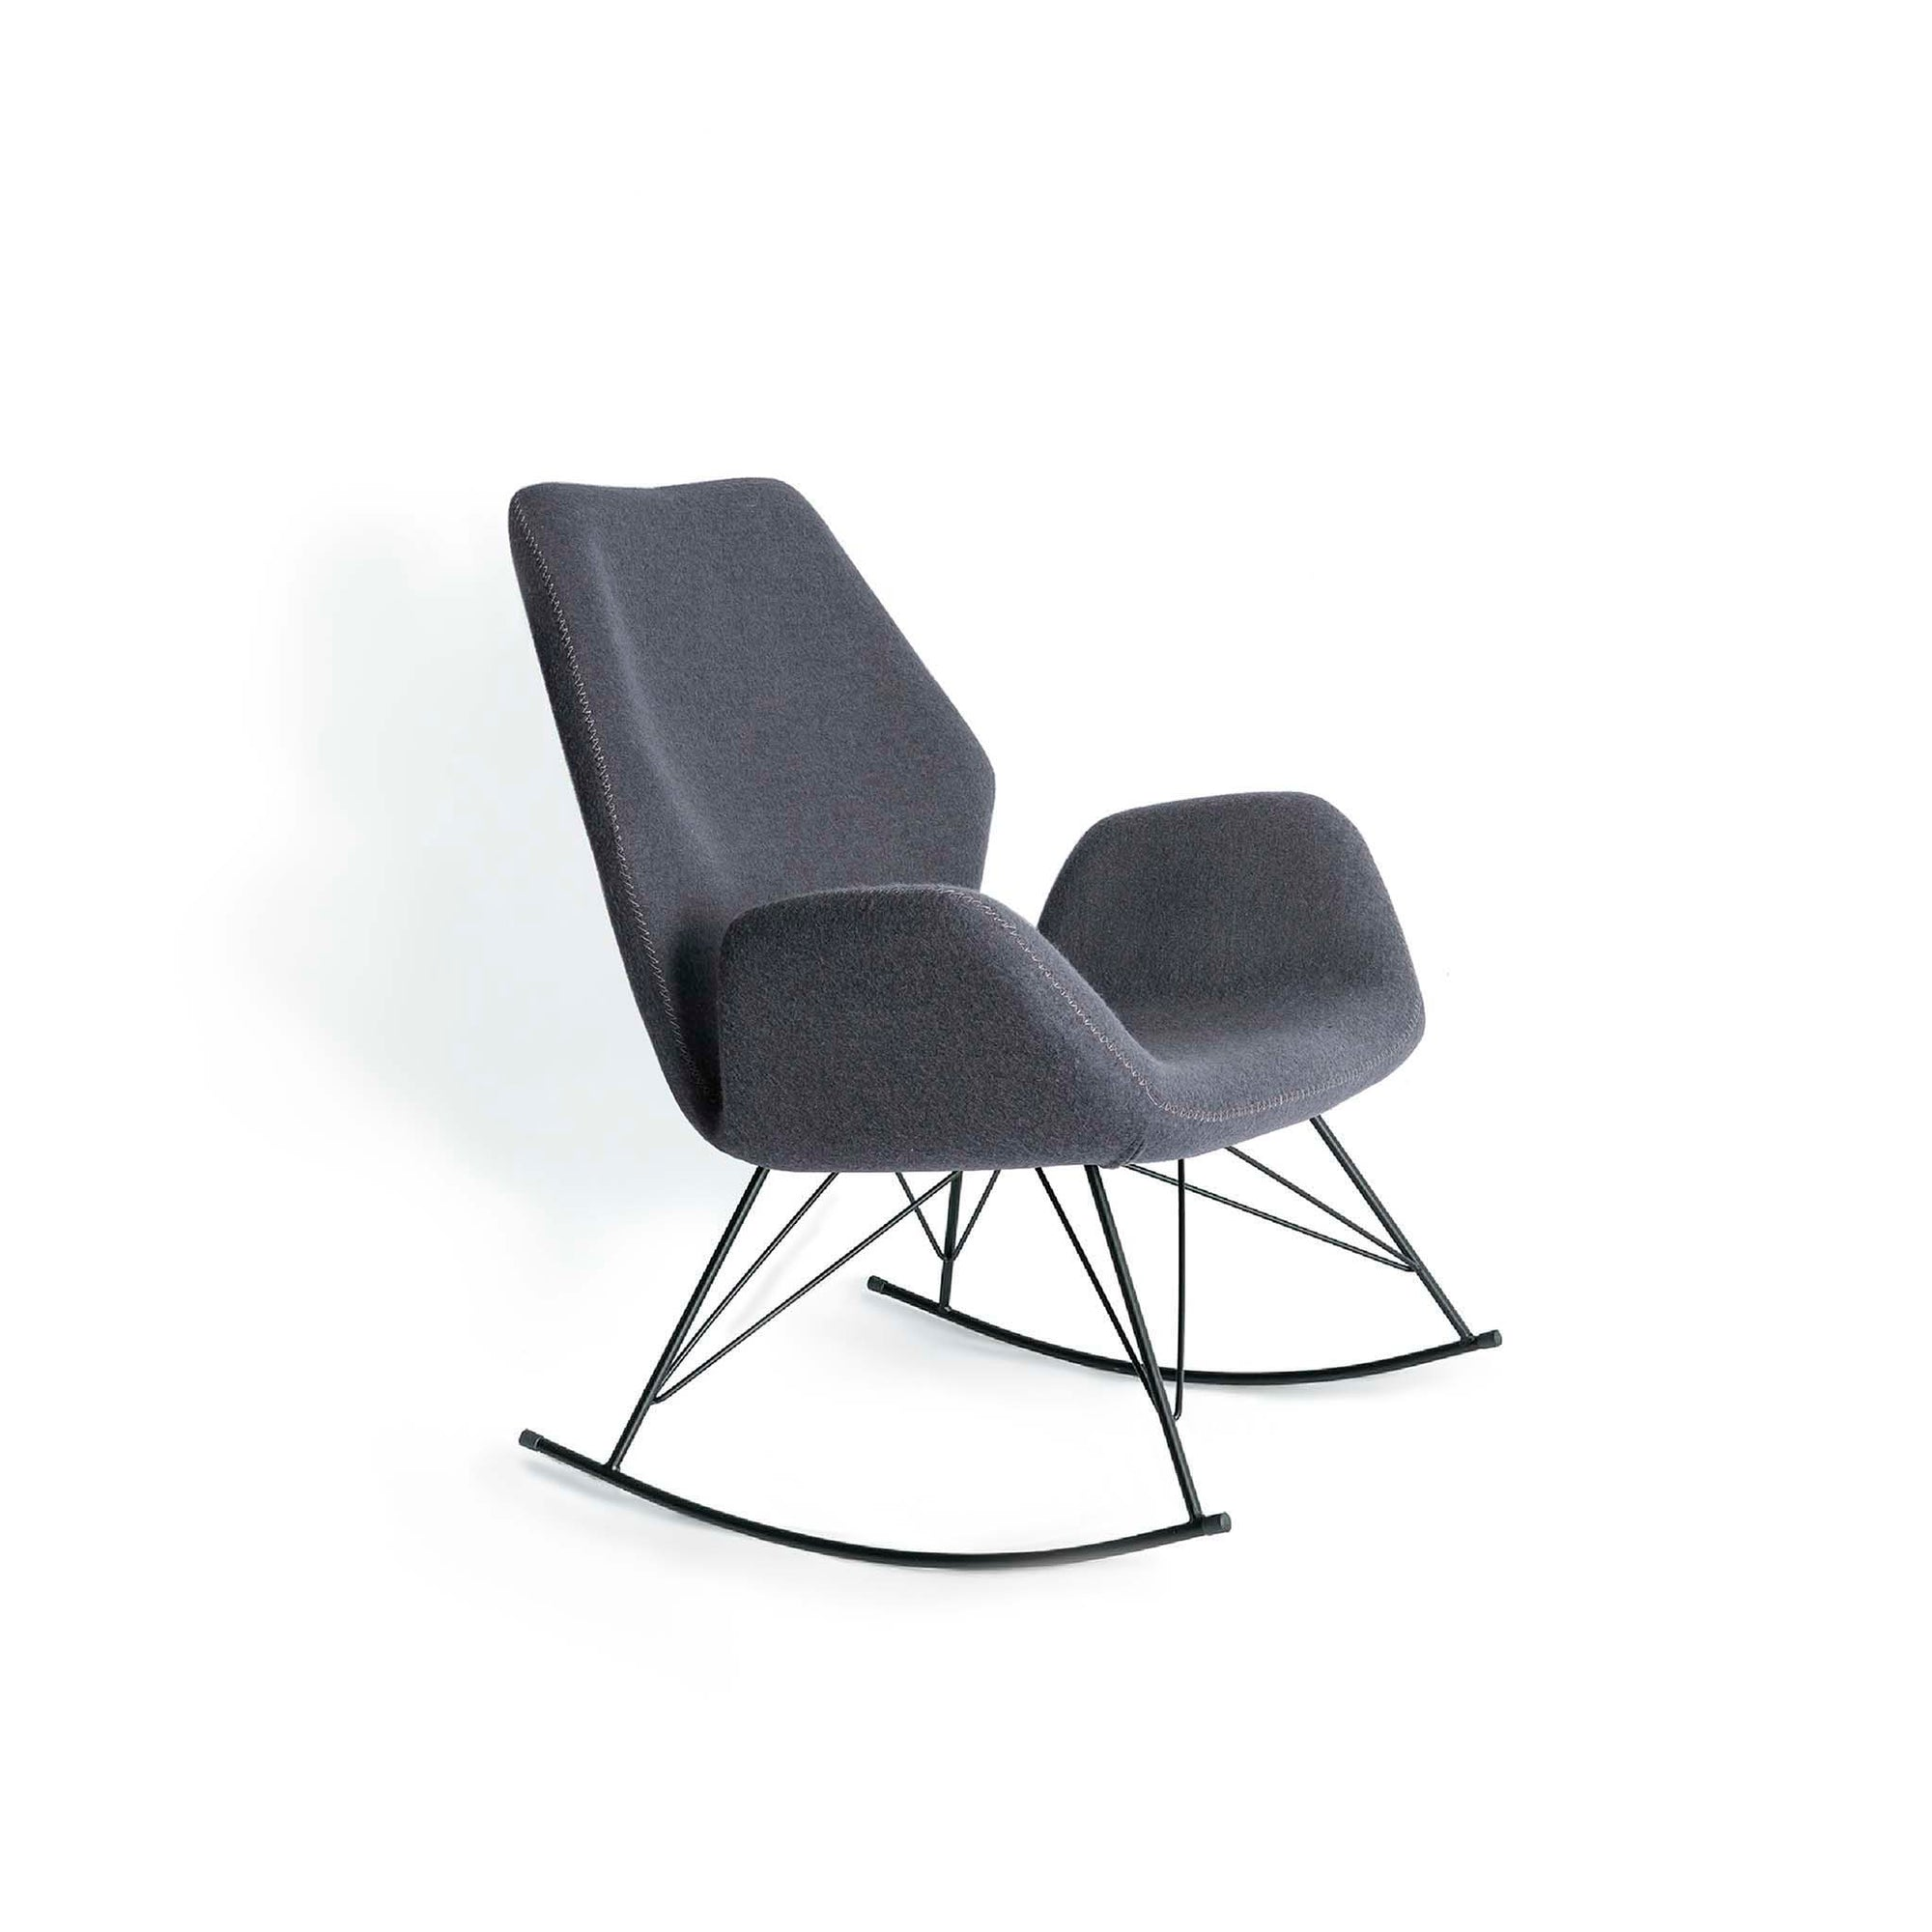 Bryce Dark Grey Rocking Chair - Side view